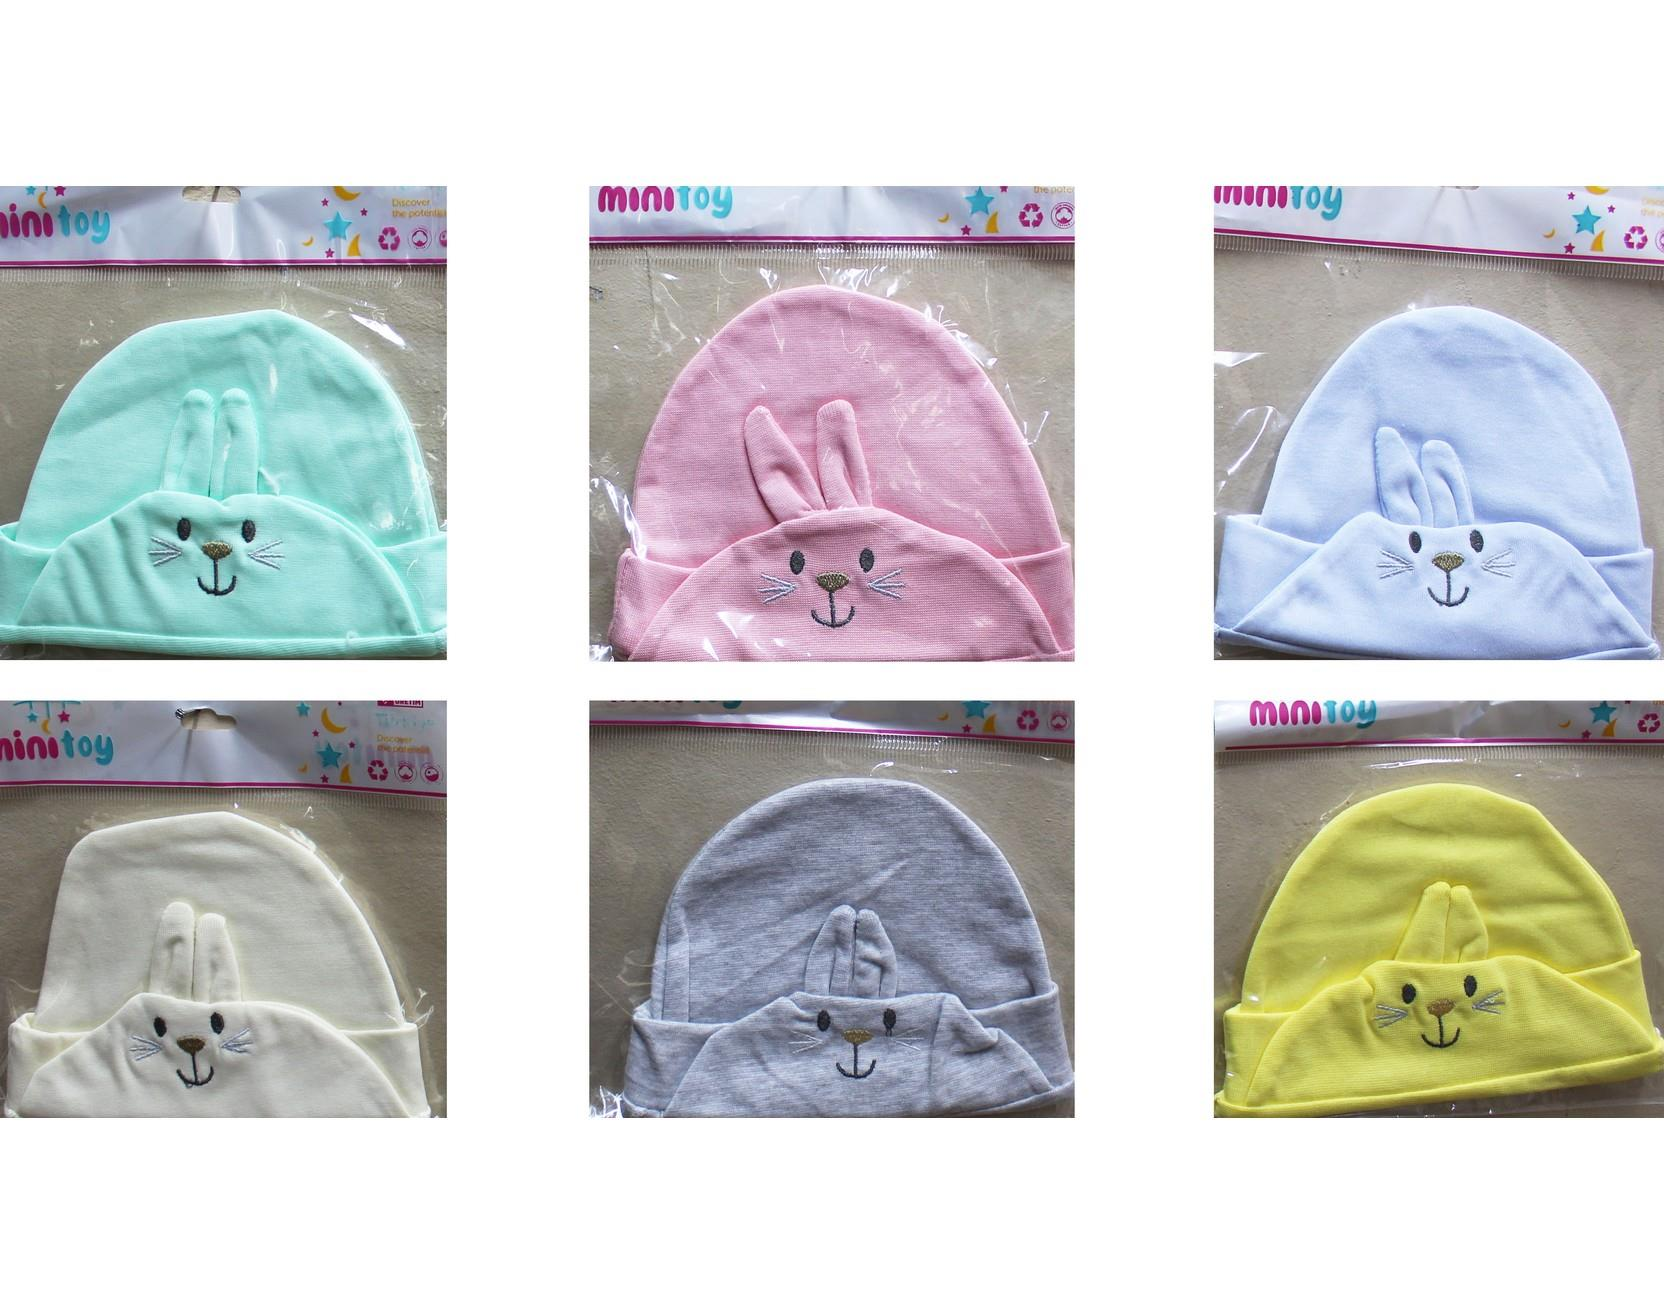 040 Wholesale hats for newborns in a pack of 12 pieces with a bunny print